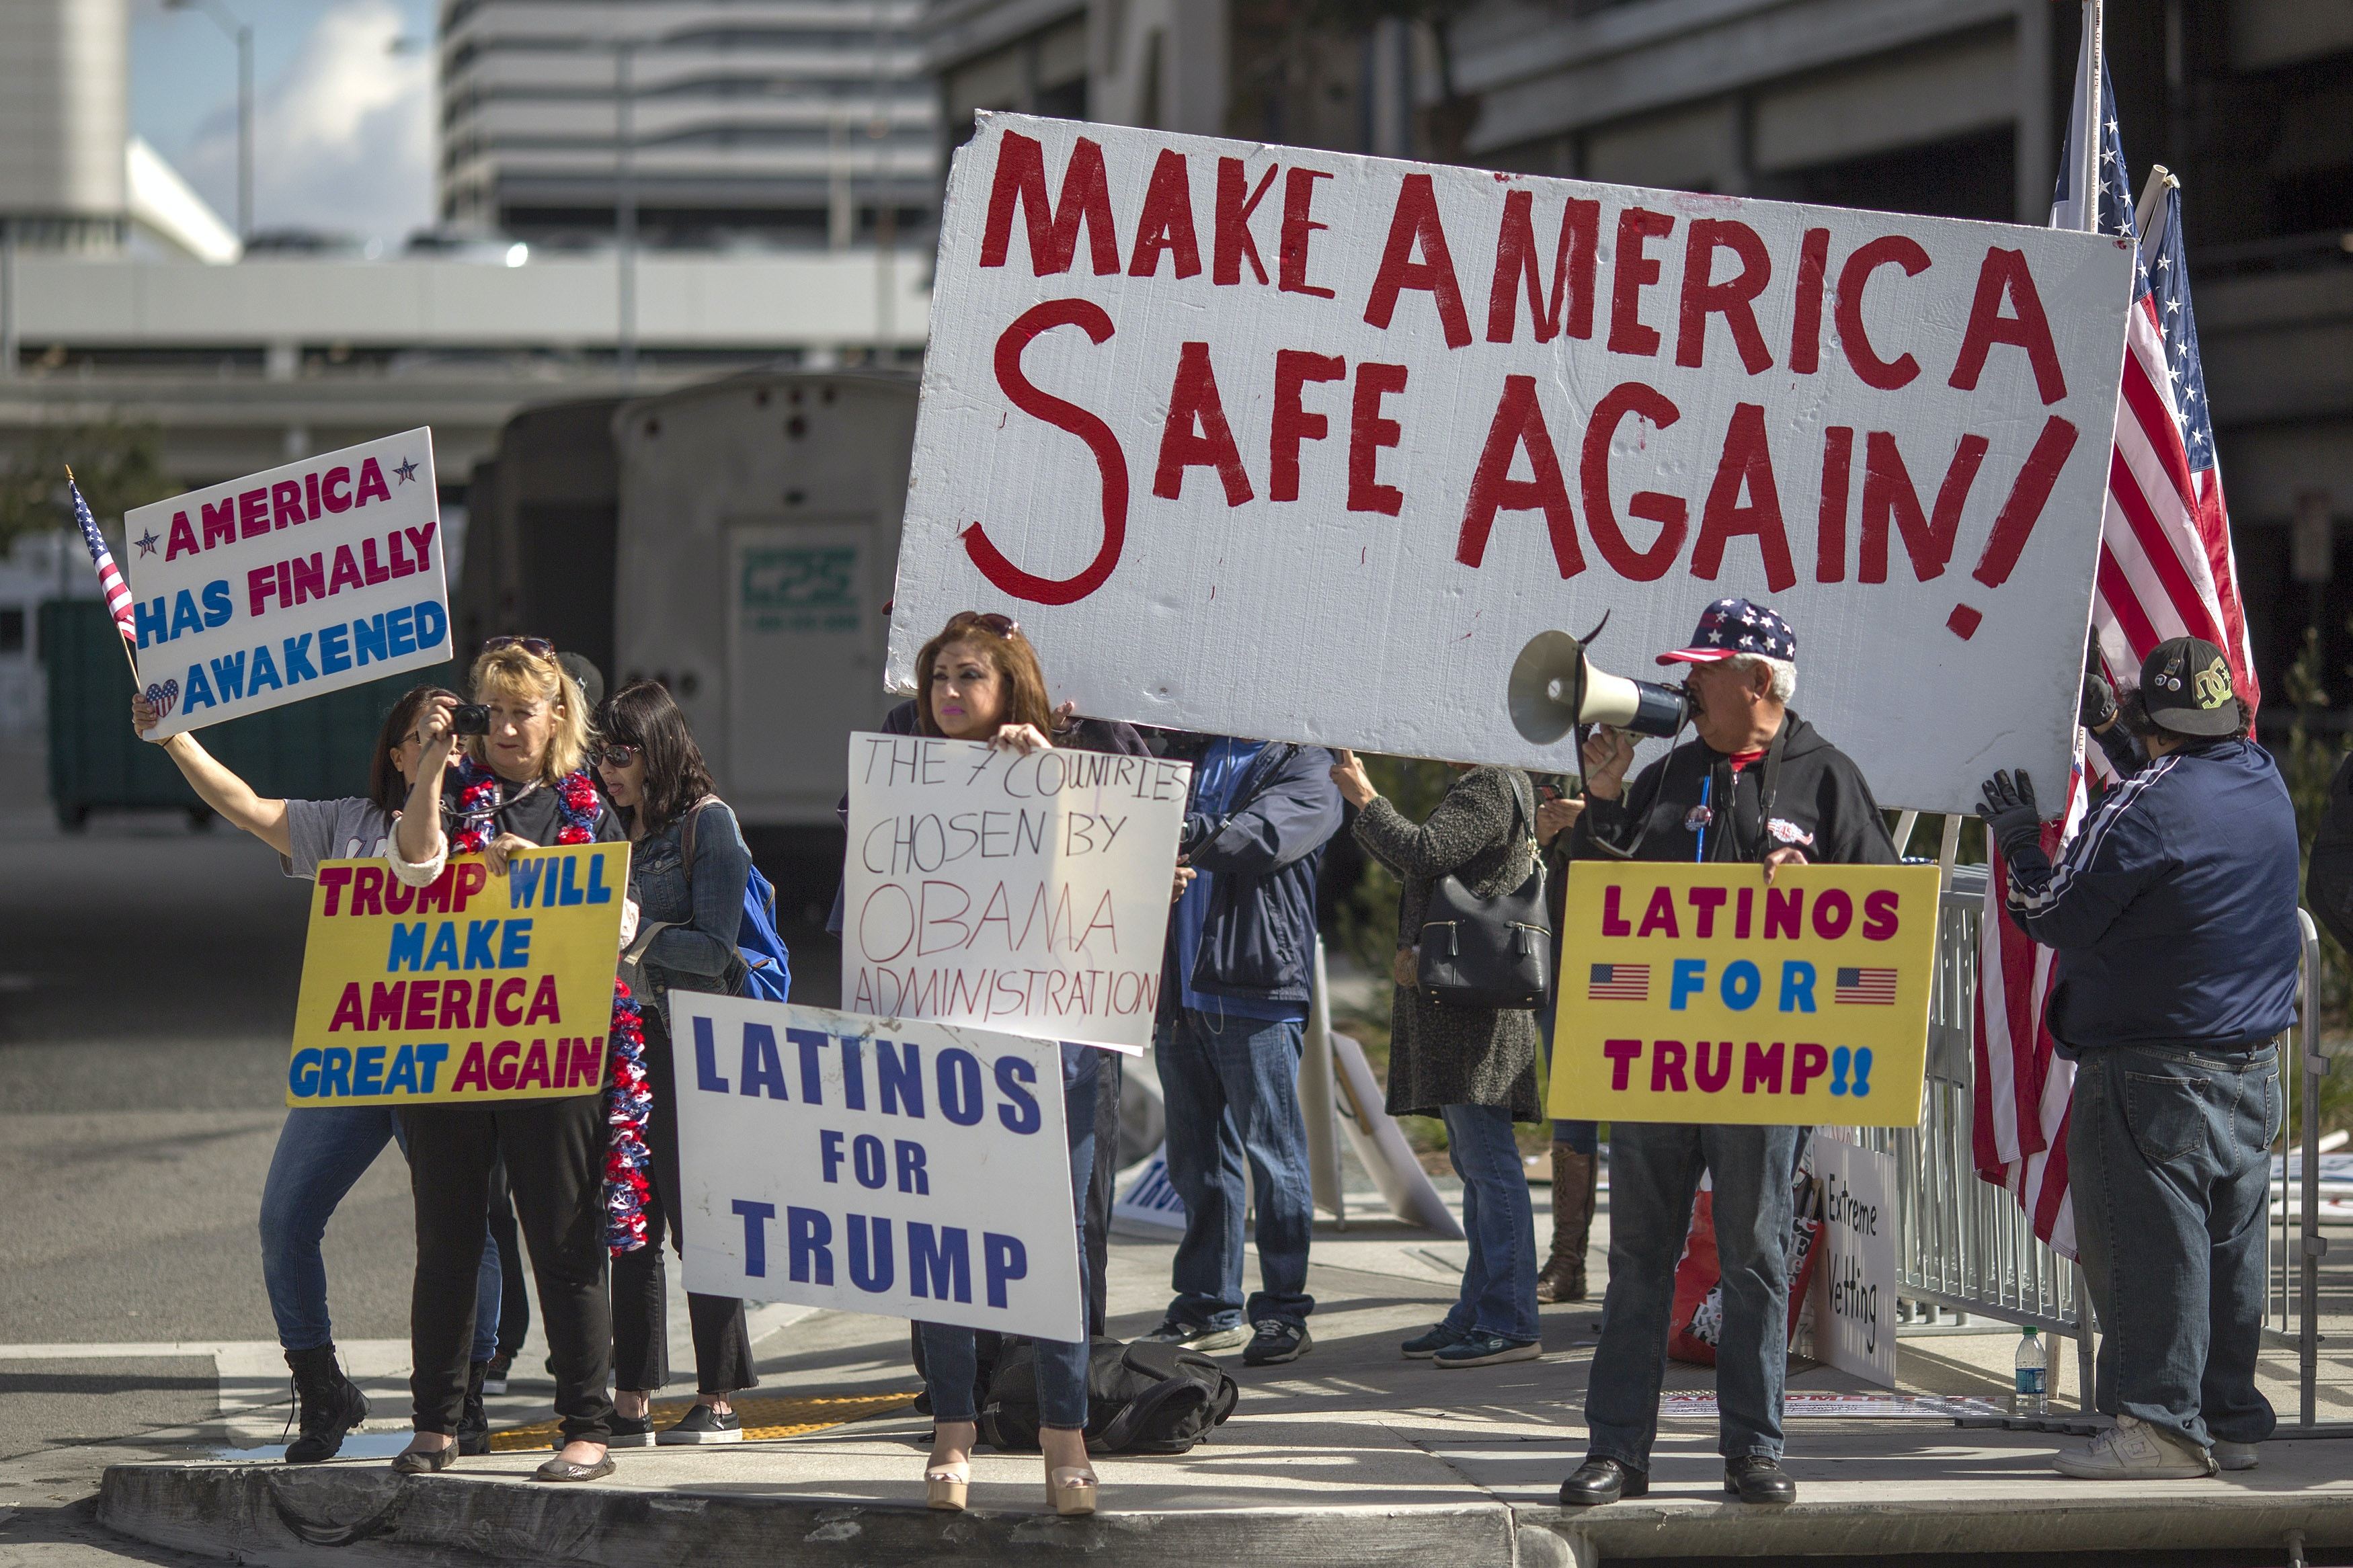 LOS ANGELES, CA - FEBRUARY 04: Trump supporters demonstrate against a ruling by a federal judge in Seattle that grants a nationwide temporary restraining order against the presidential order to ban travel to the United States from seven Muslim-majority countries, at Tom Bradley International Terminal at Los Angeles International Airport on February 4, 2017 in Los Angeles, California. (Photo by David McNew/Getty Images)